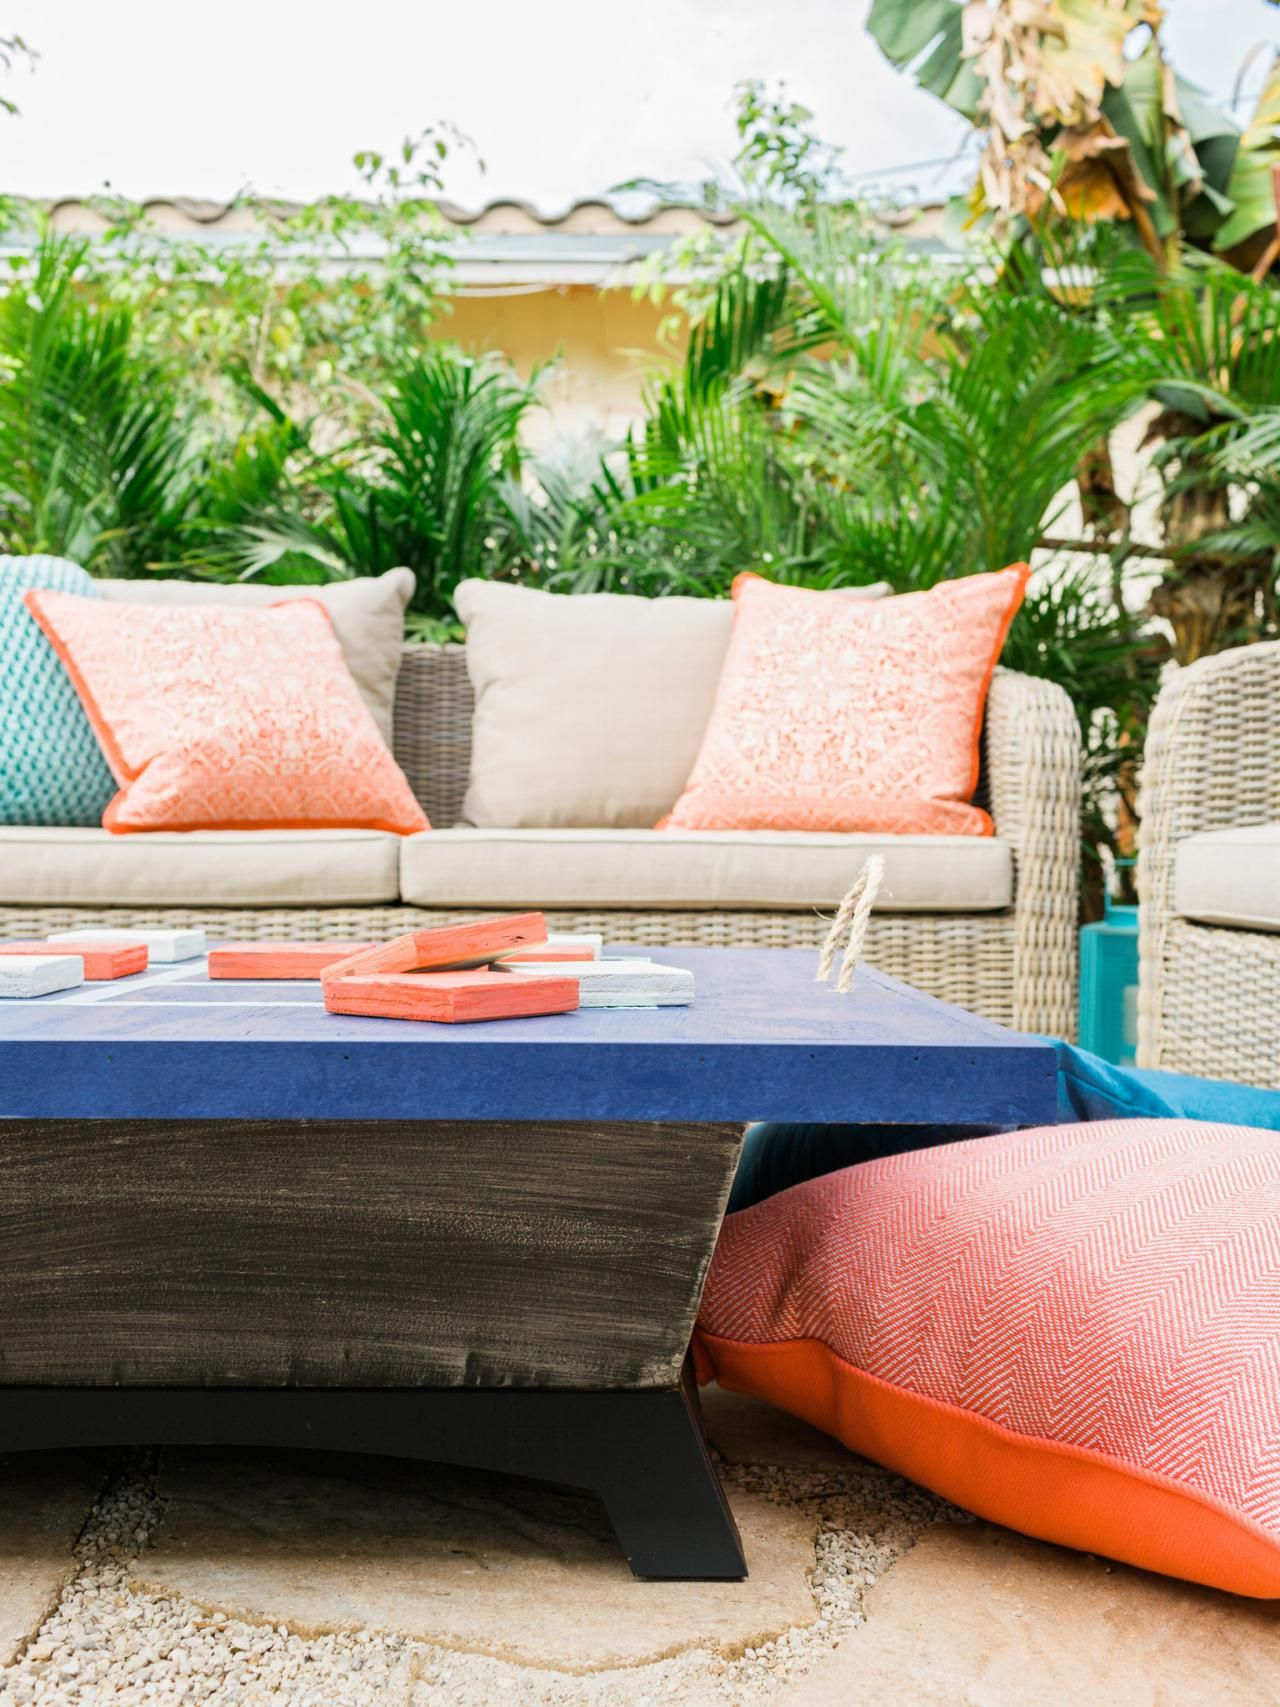 Diy network experts discuss the best ways to clean outdoor cushions canvas seats and chair backs and white and colored plastic